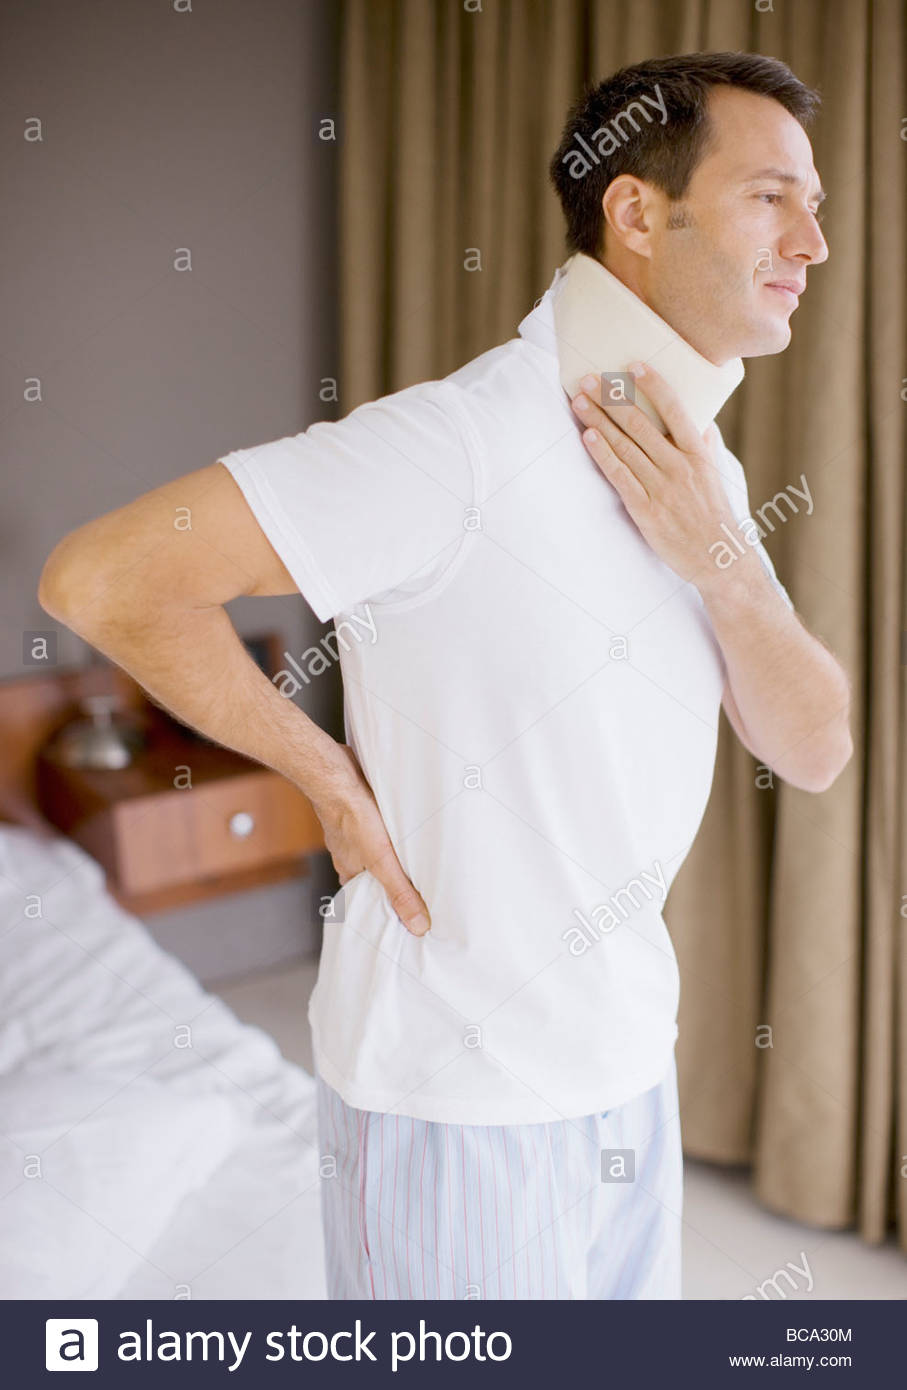 Man with neck brace and aching back - Stock Image